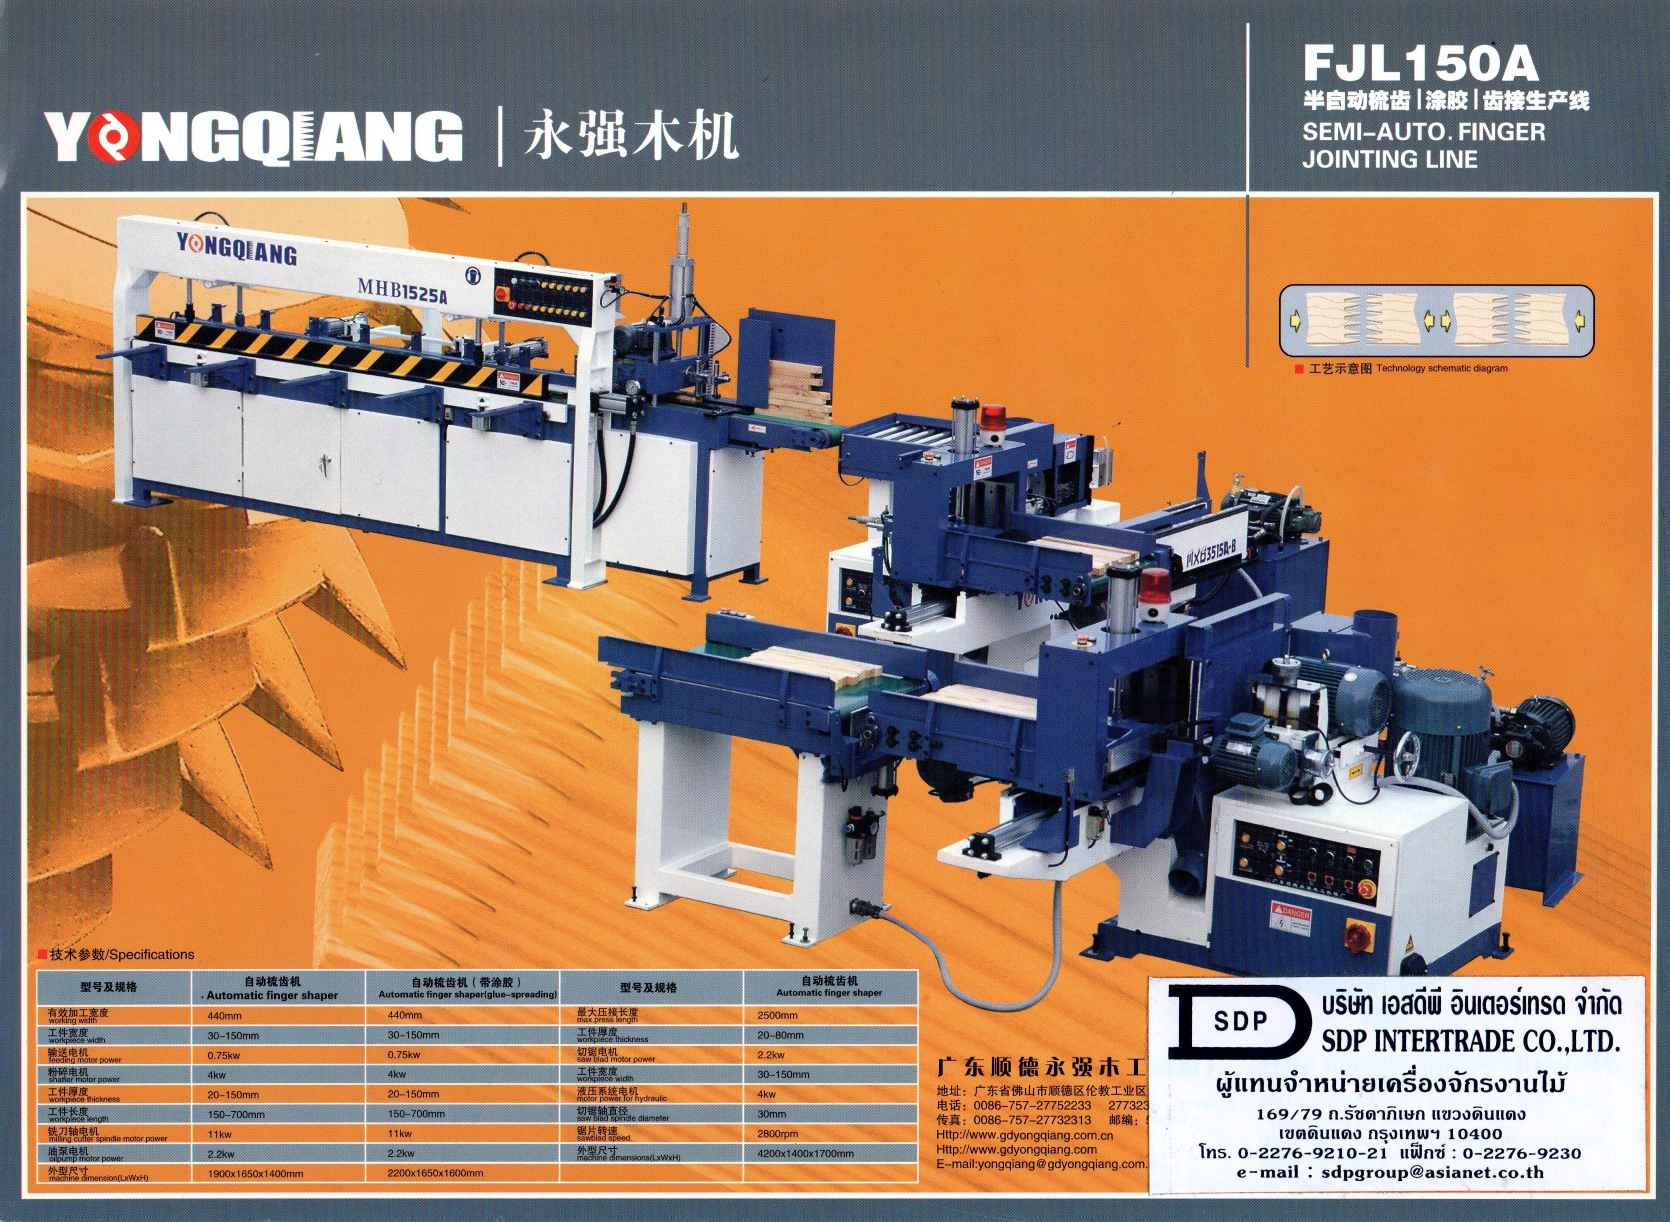 เครื่องตีฟันจ๊อยส์, Finger joint, Finger joint machine, Automatic FInger joint line